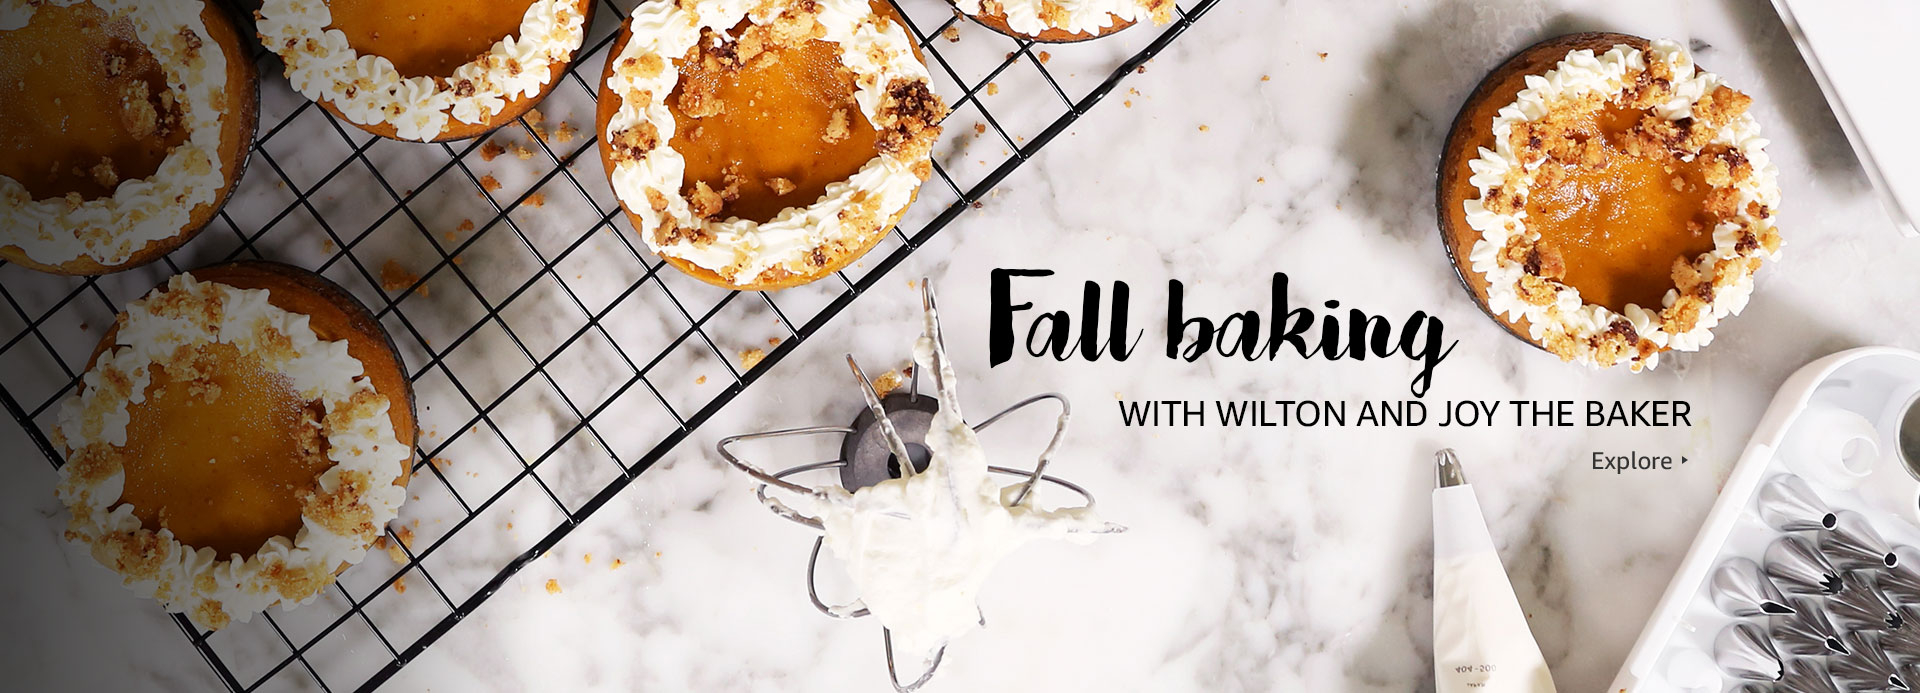 Fall baking with Wilton